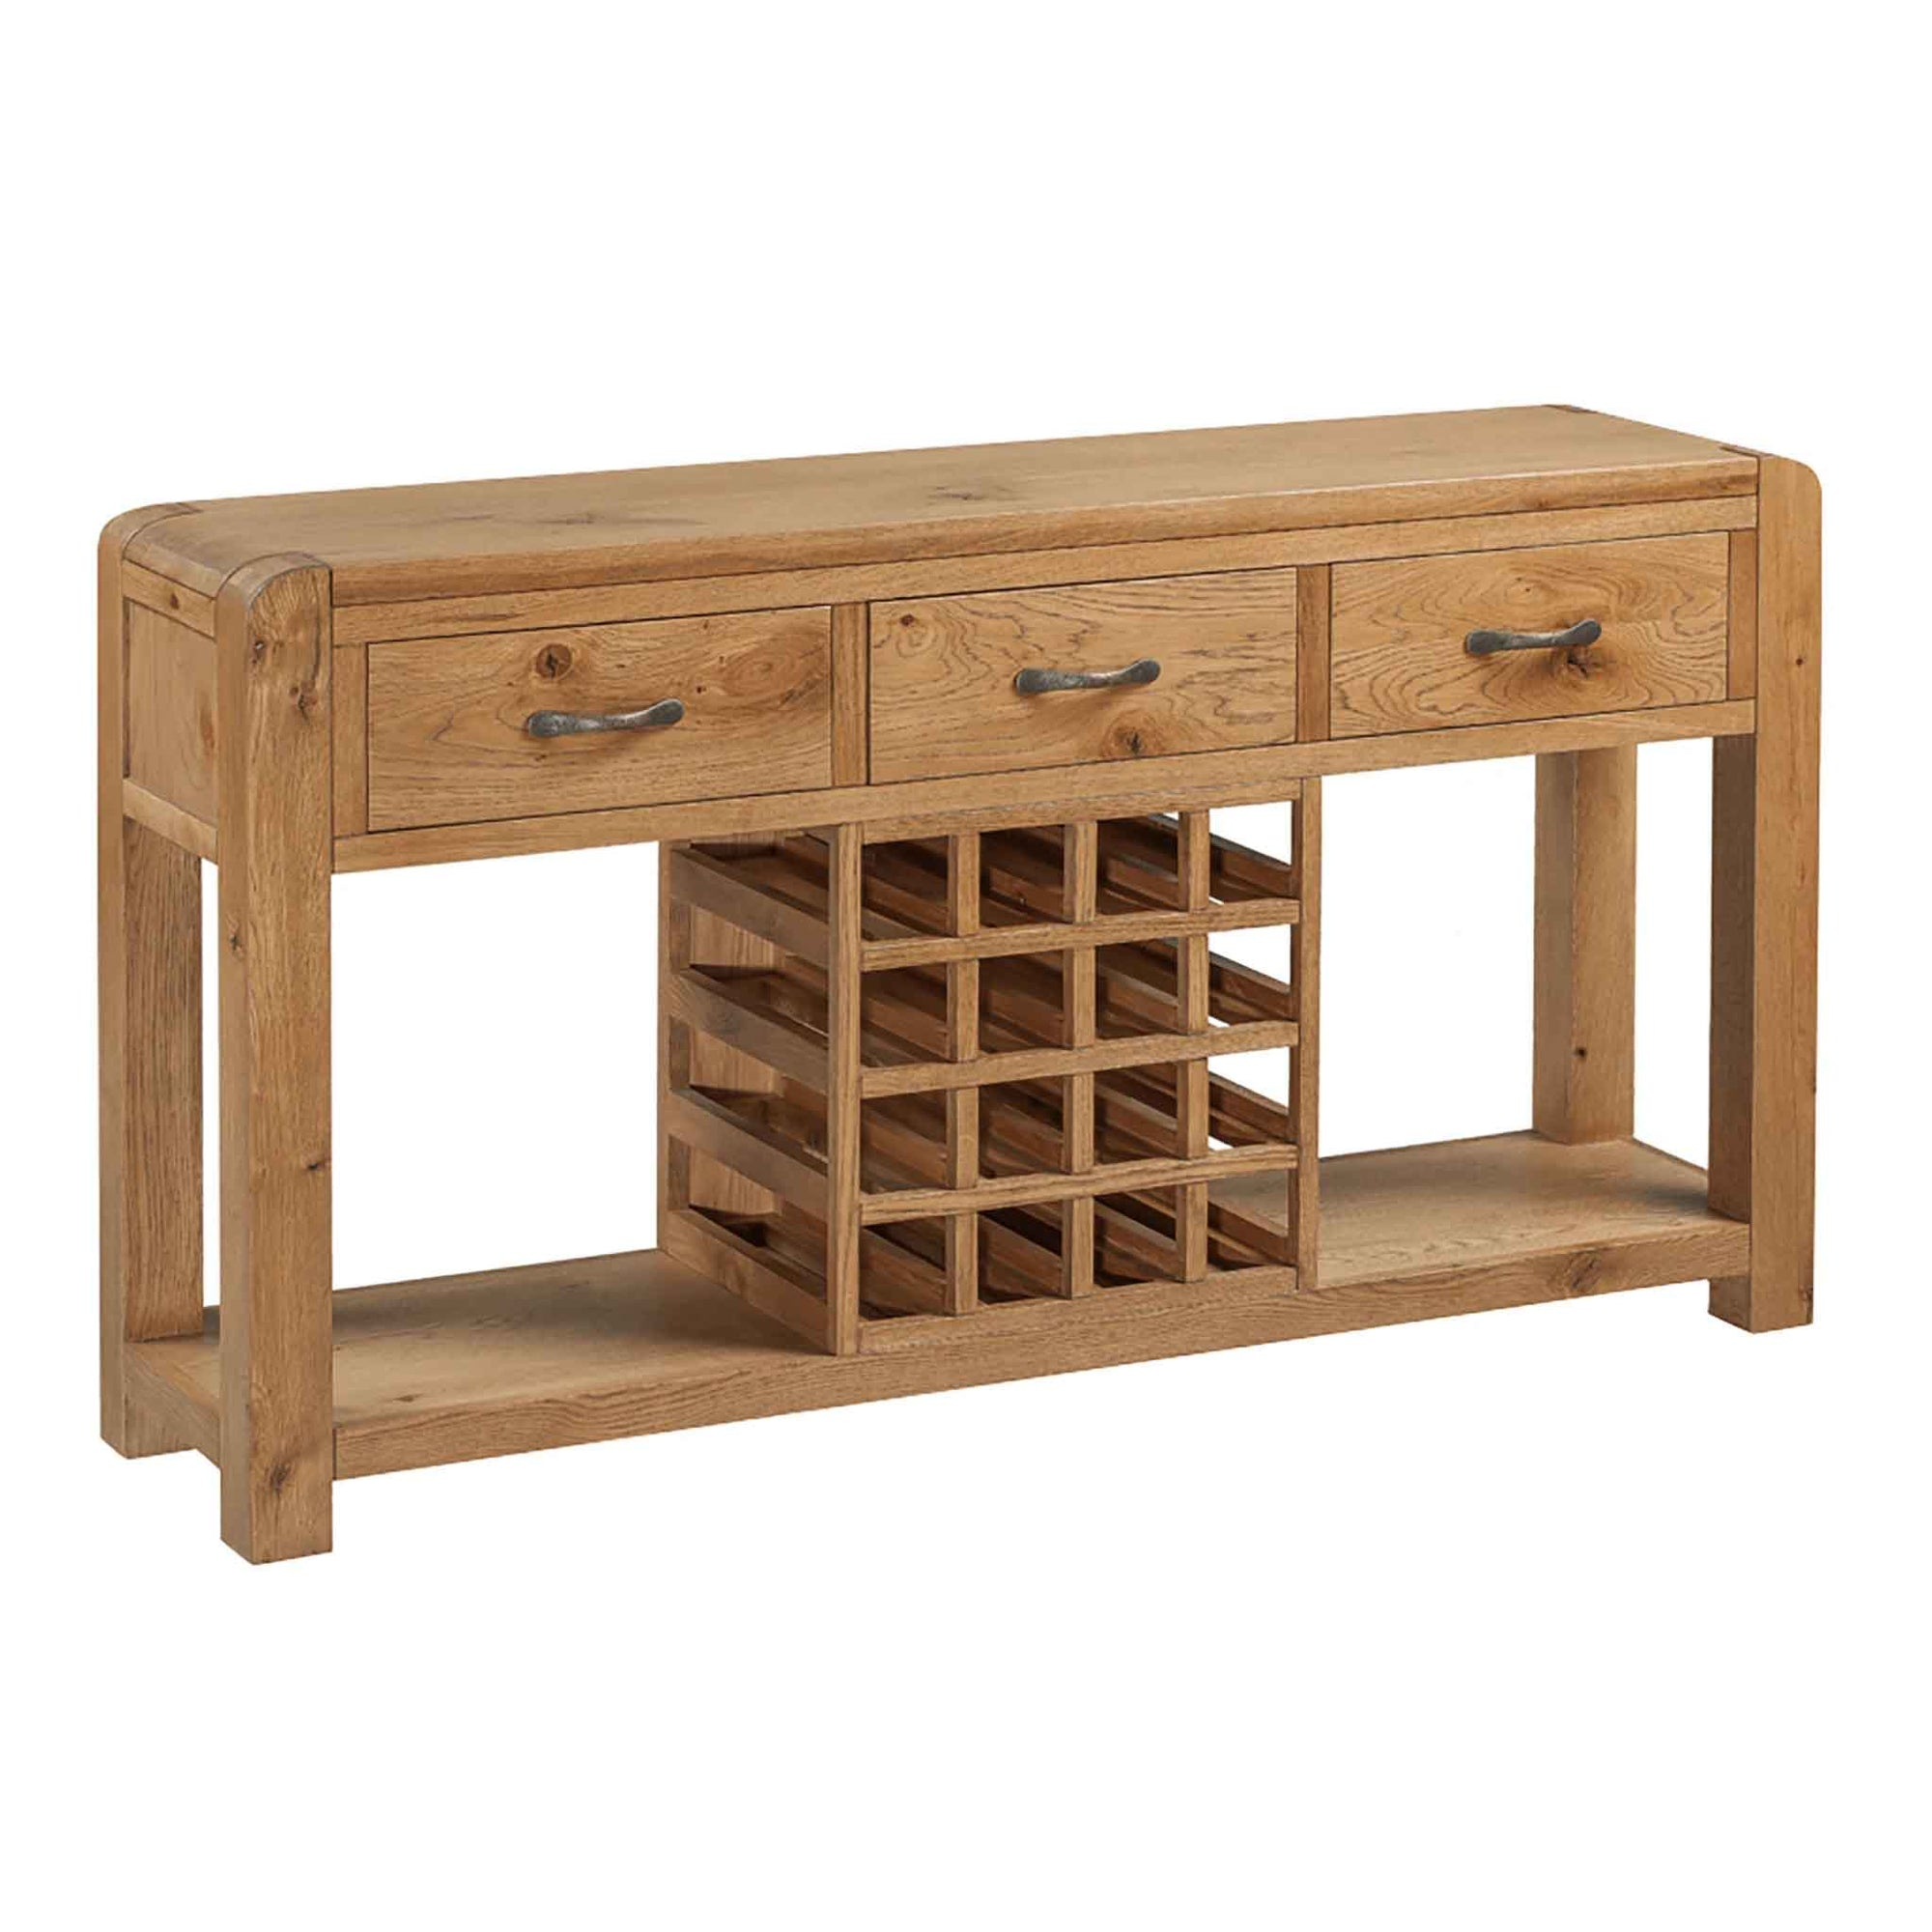 The Capri Oak Chunky Rustic Large Sideboard with Wine Rack from Roseland Furniture